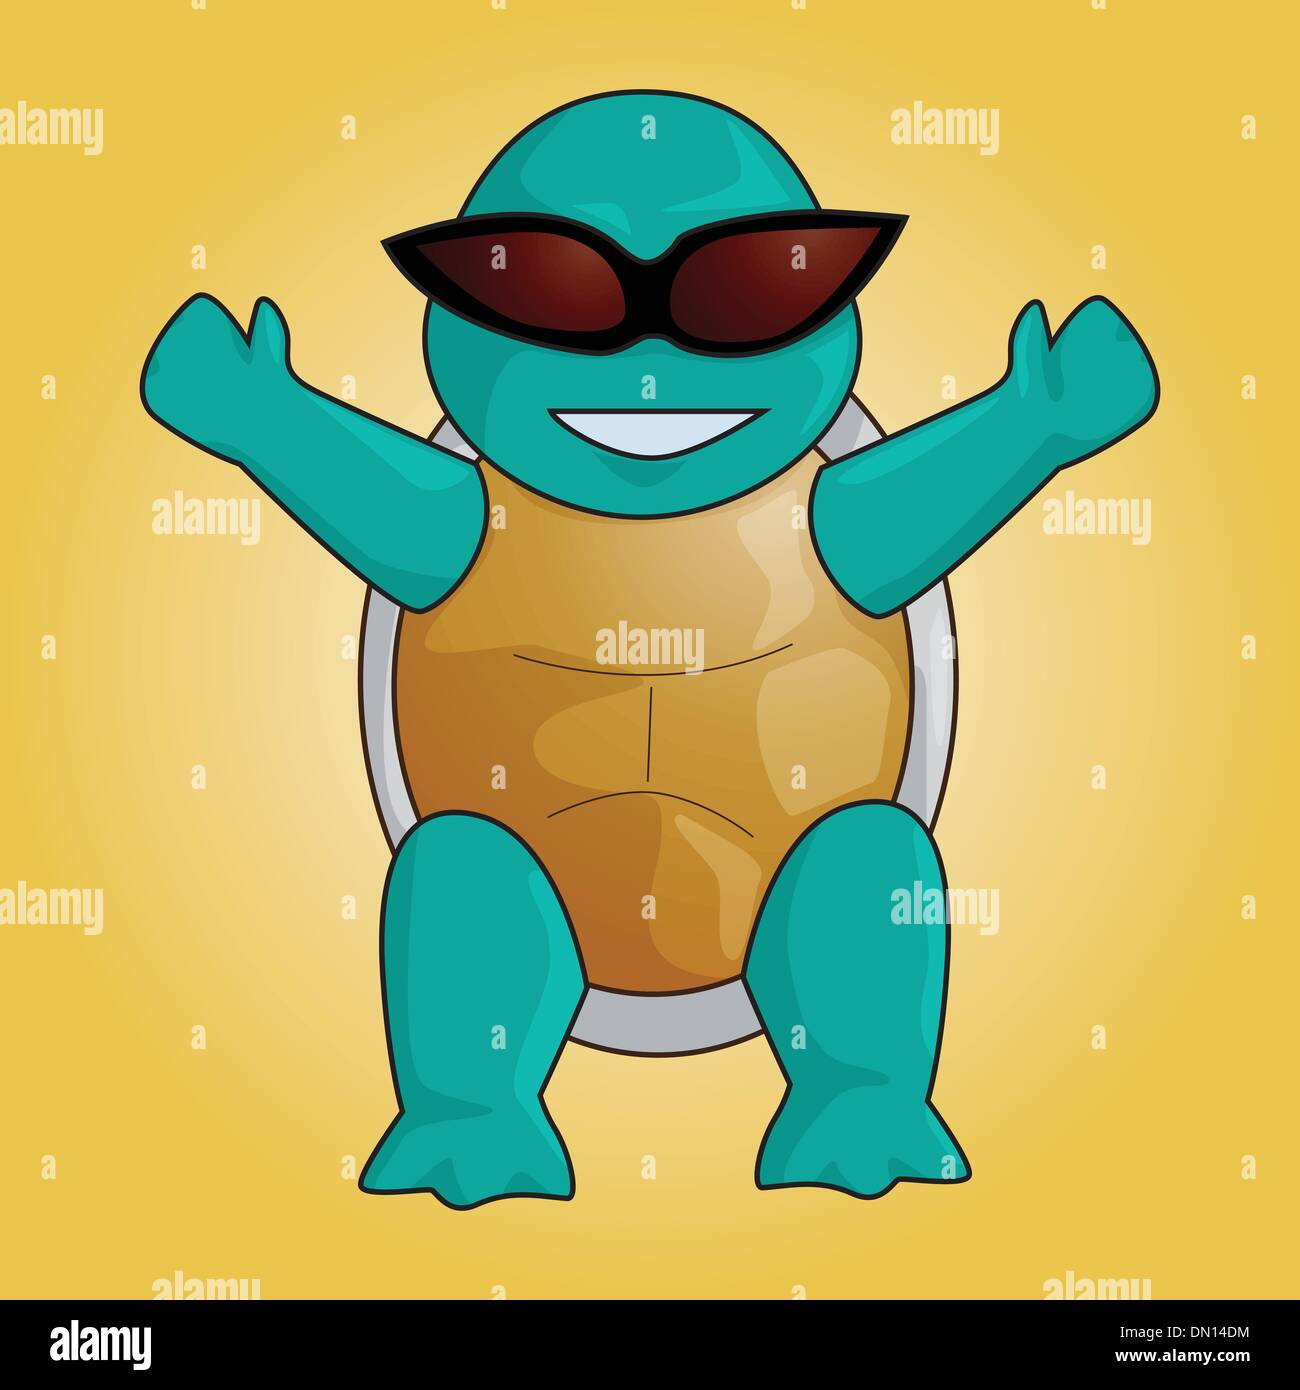 Cartoon Tortoise High Resolution Stock Photography And Images Alamy